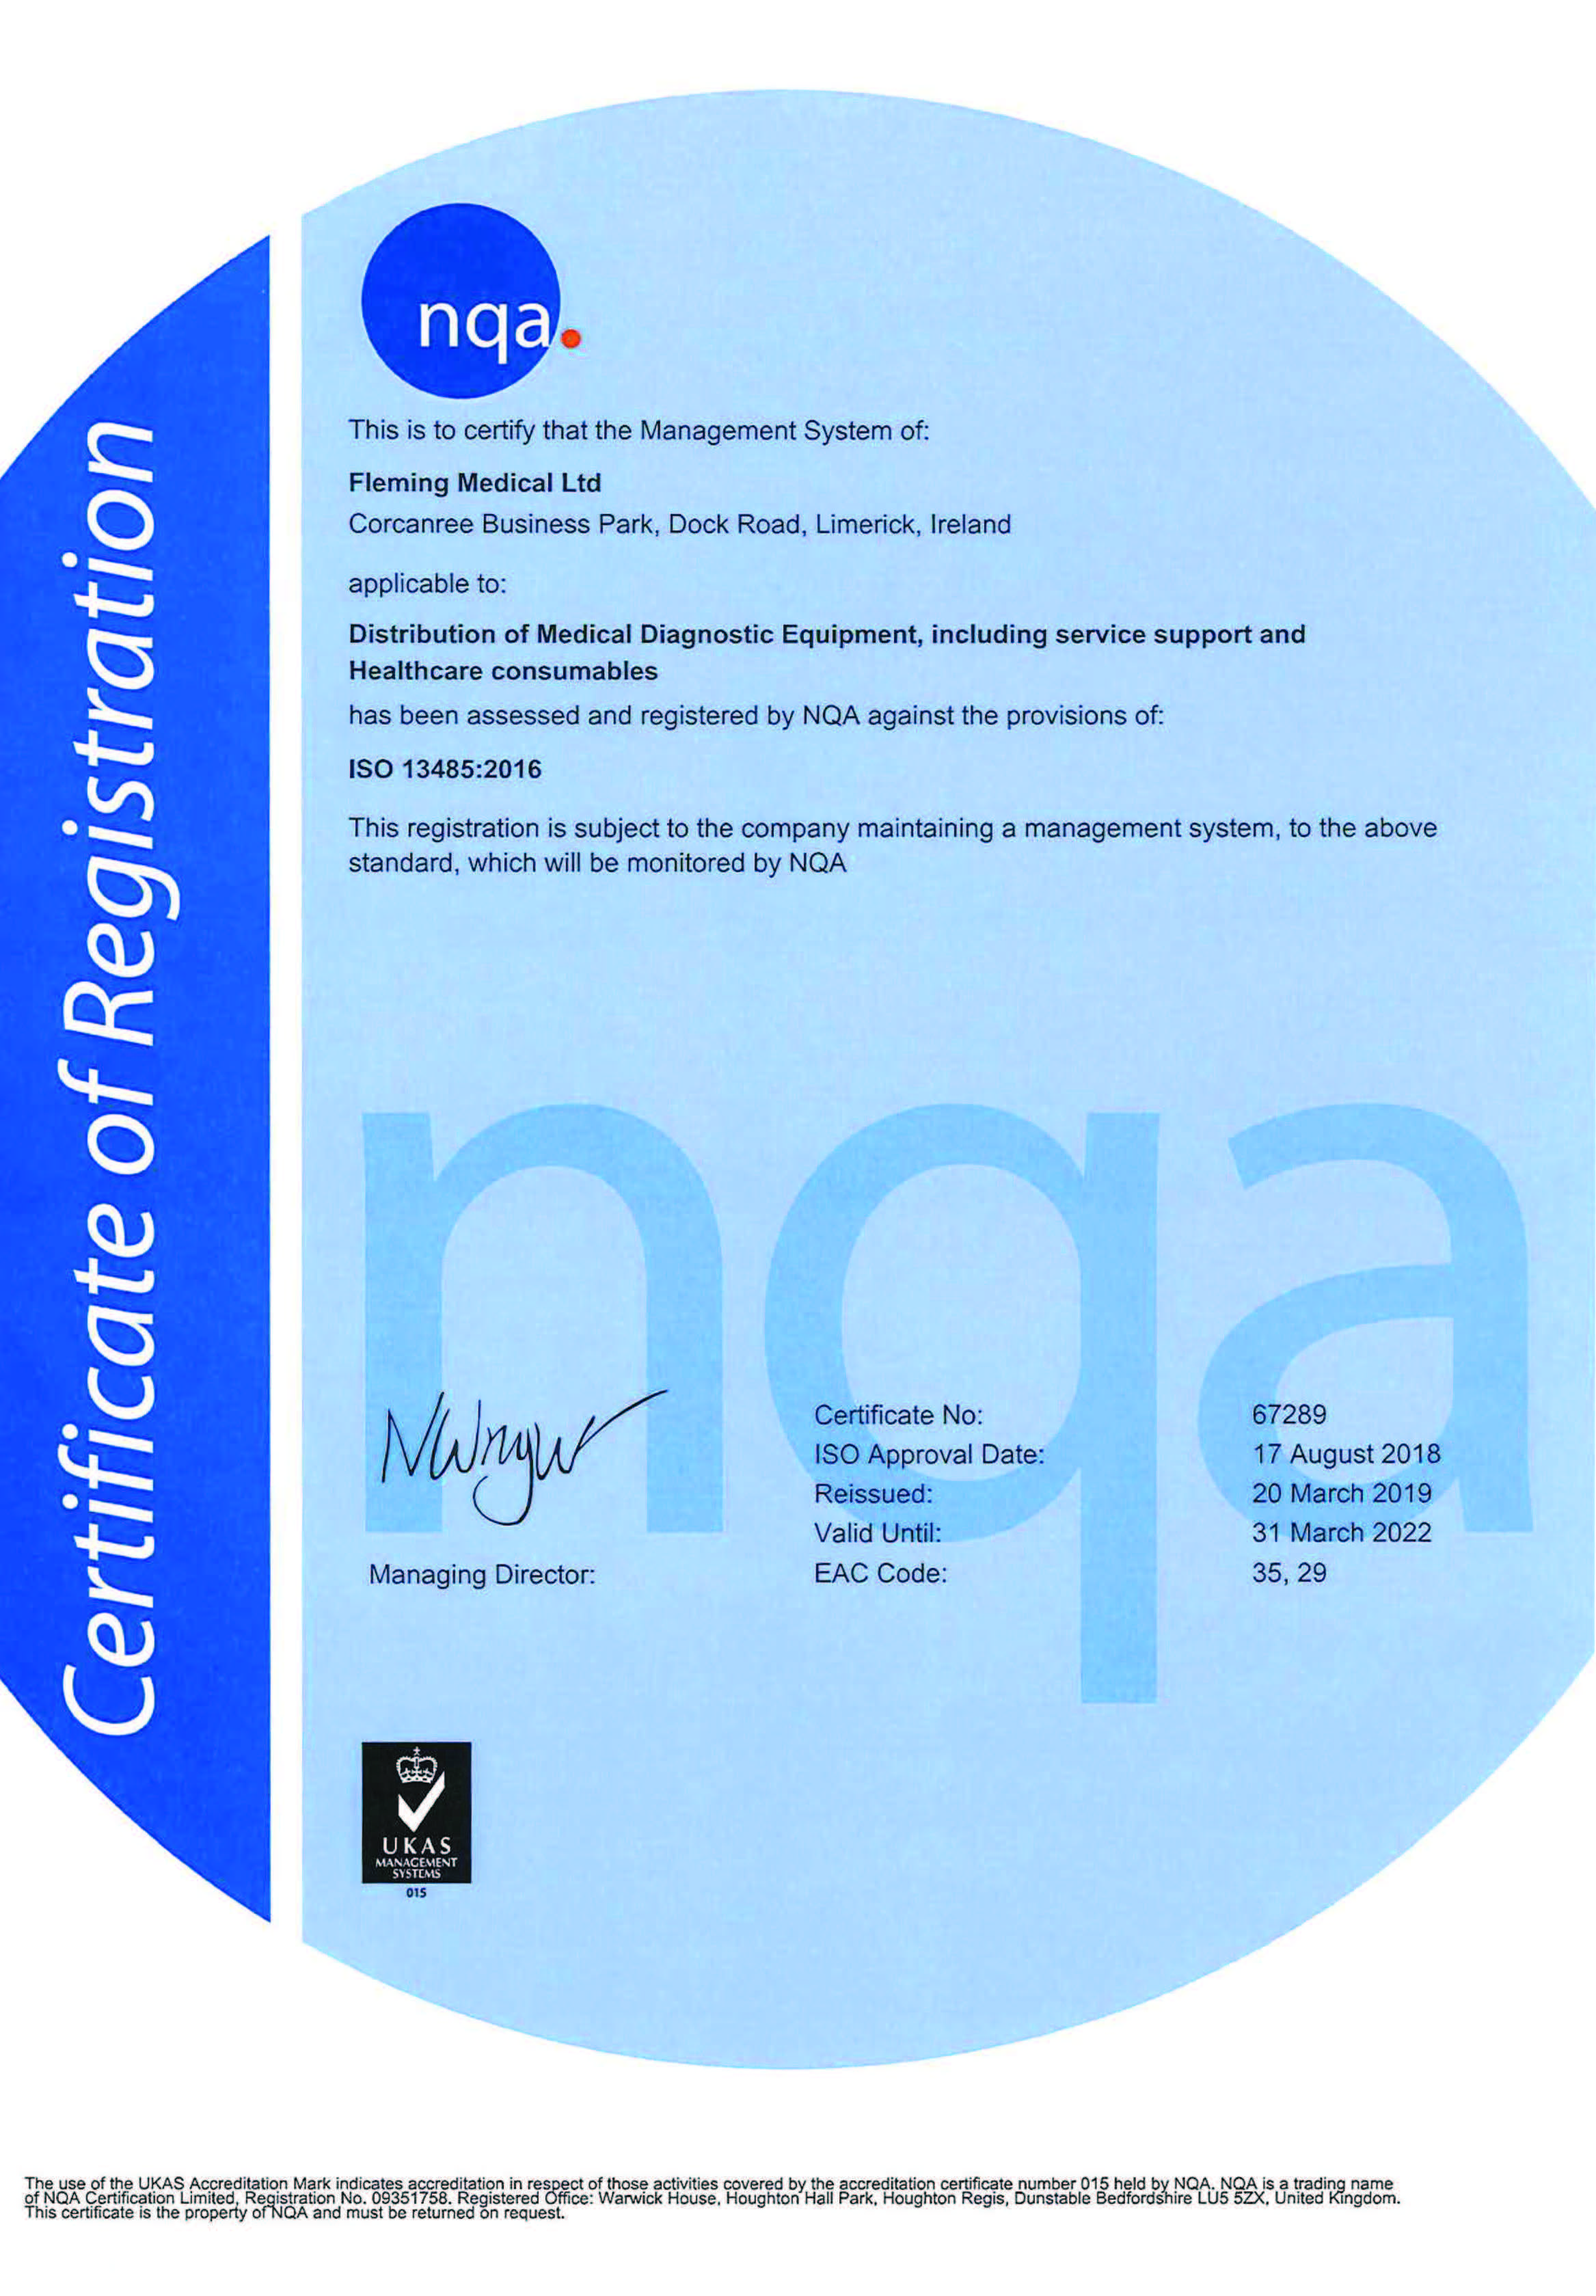 NQA ISO 13485-2016 Certification - Fleming Medical